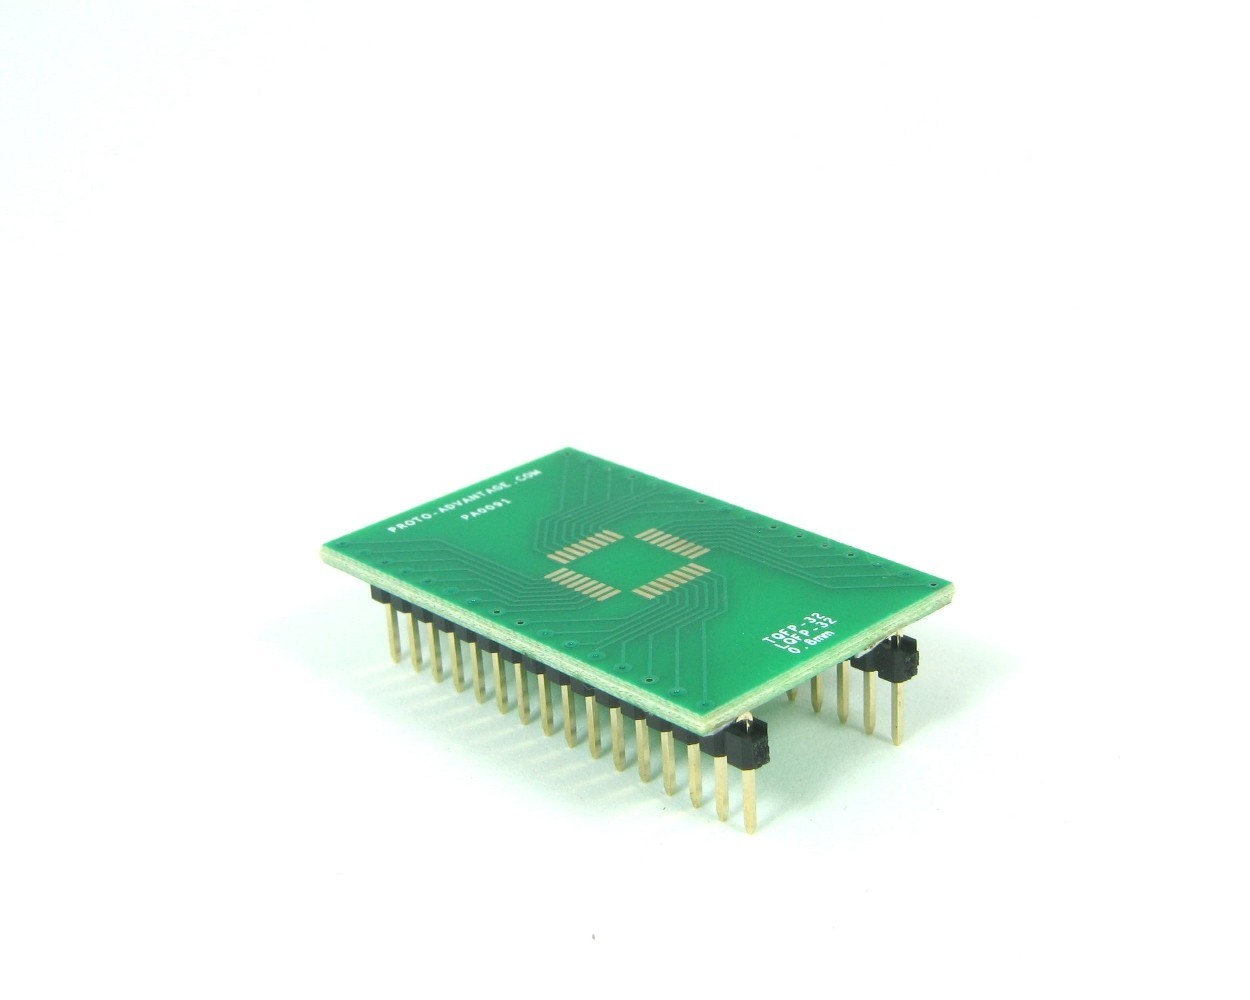 TQFP-32 to DIP-32 SMT Adapter (0.8 mm pitch, 7 x 7 mm body)